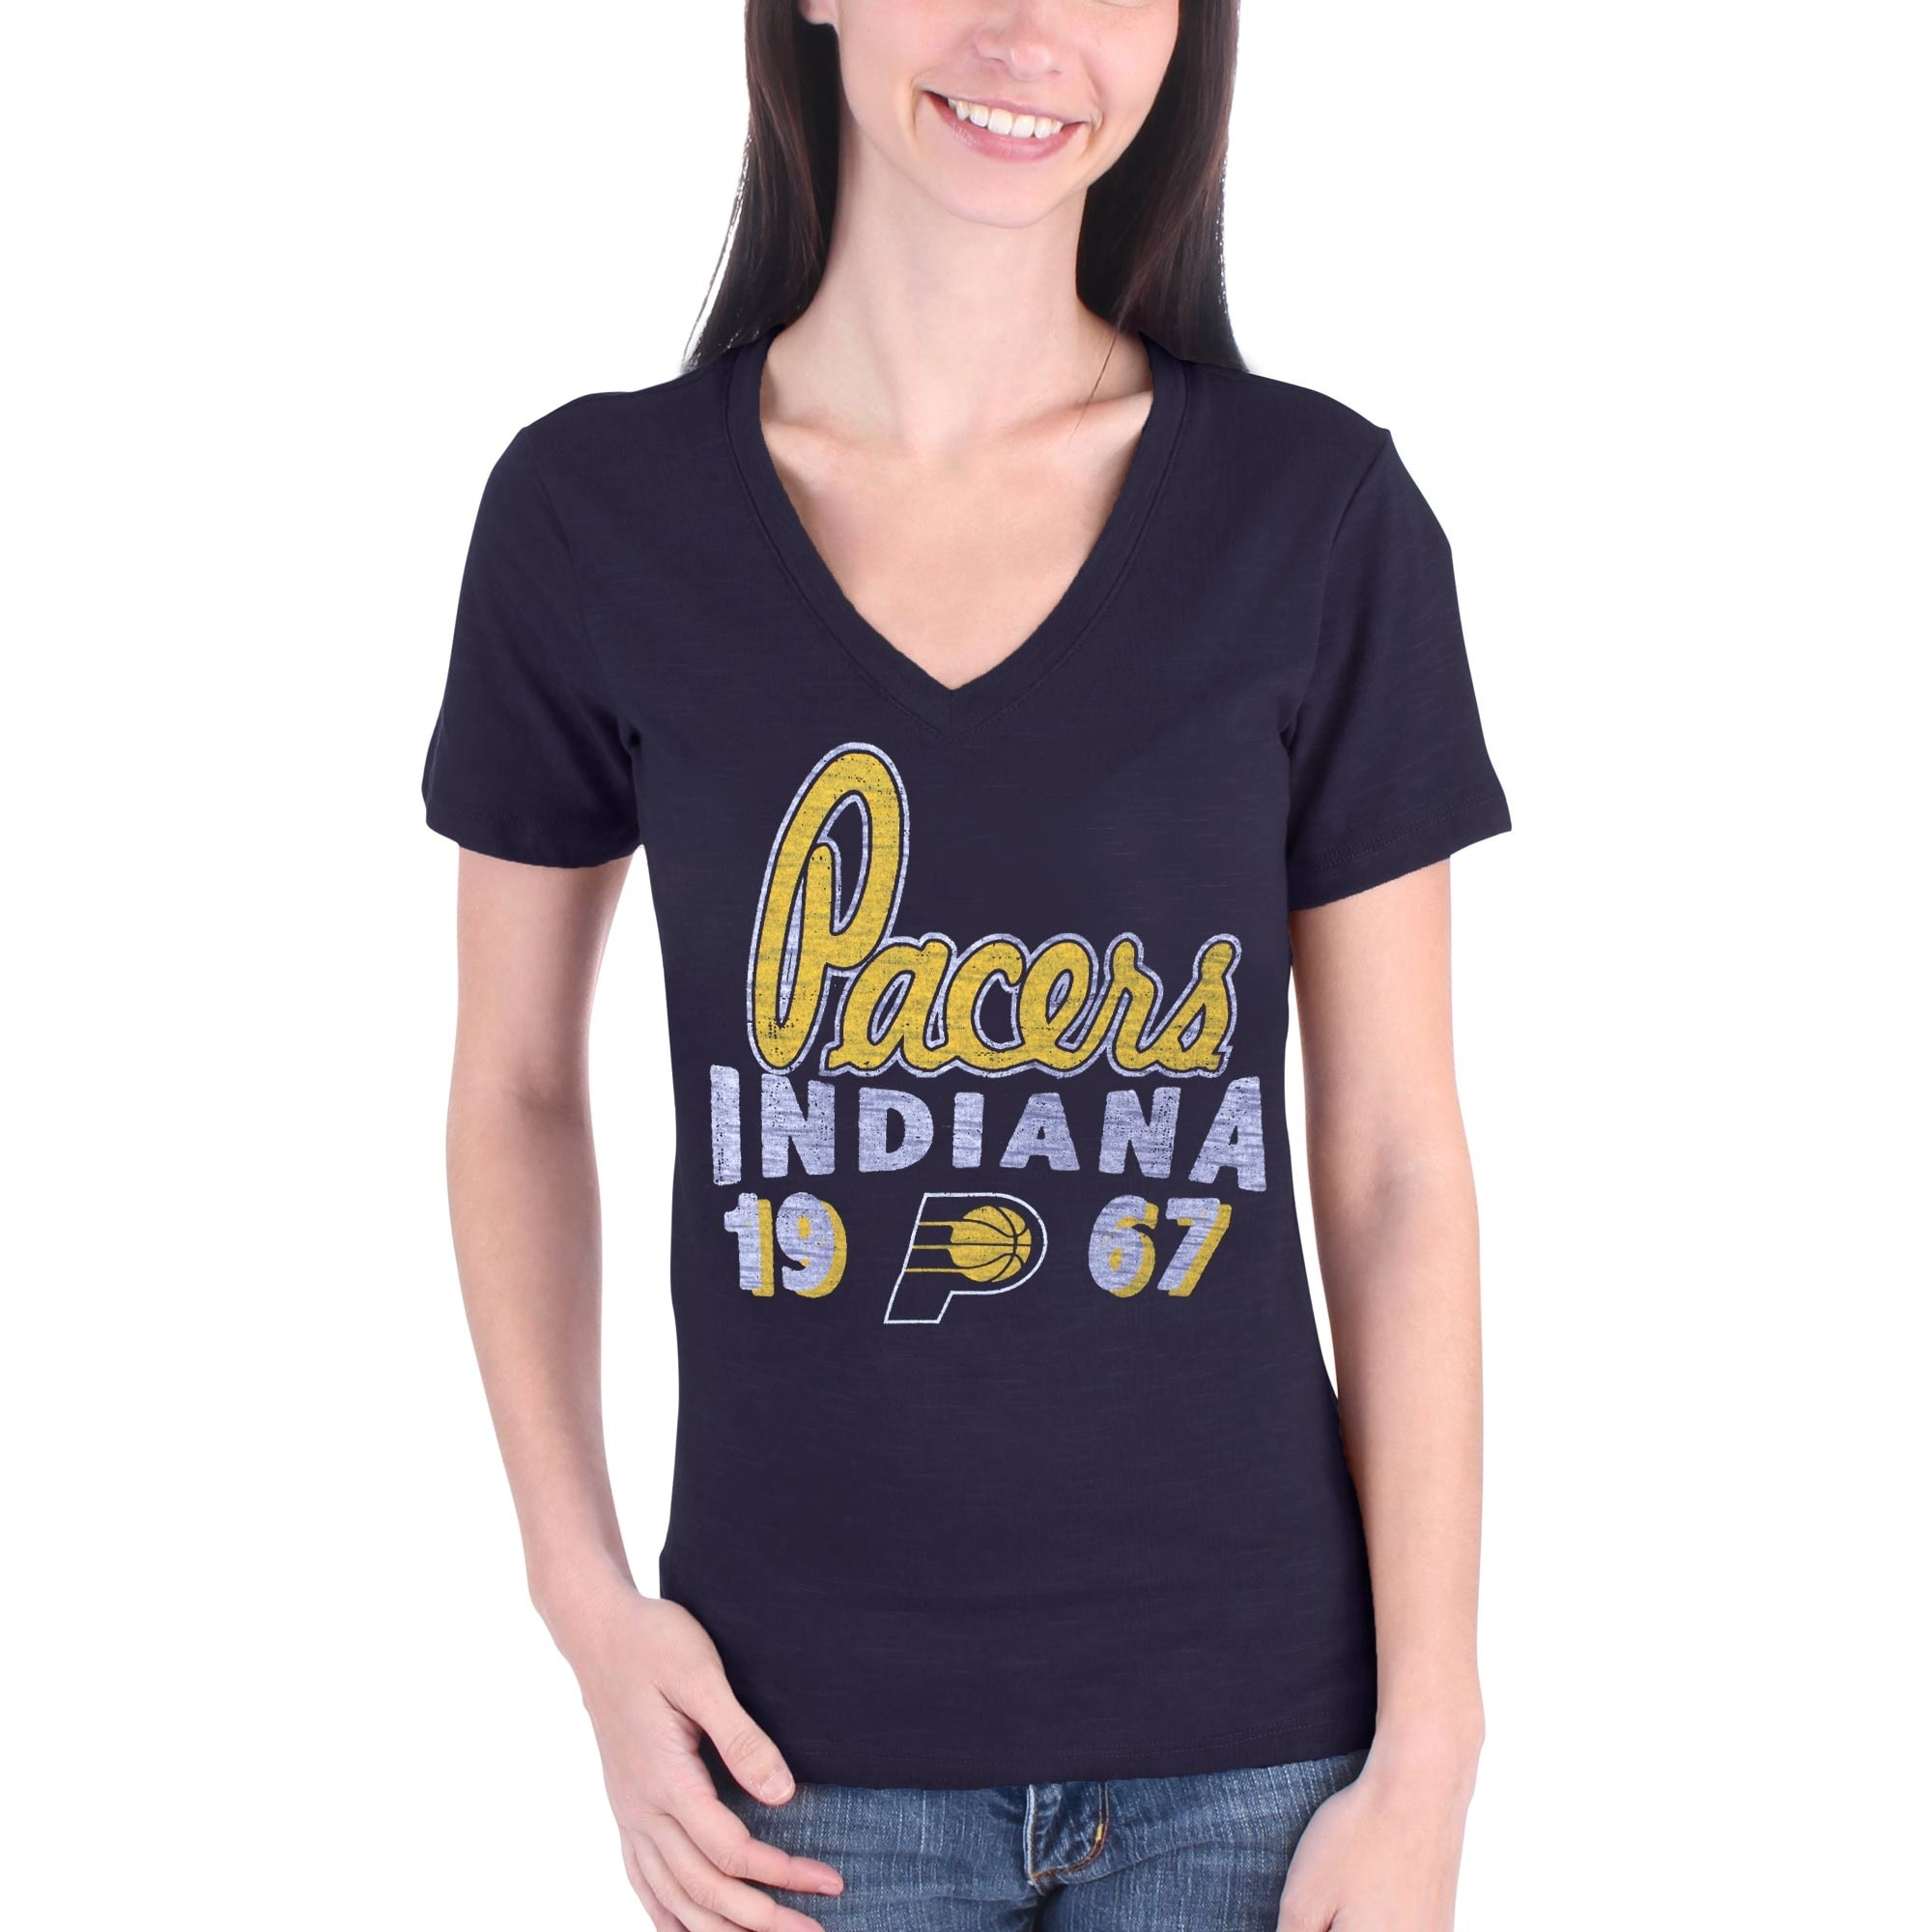 Indiana Pacers Women's Lifestyle Burnout Slim-Fit V-Neck T-Shirt - Navy Blue